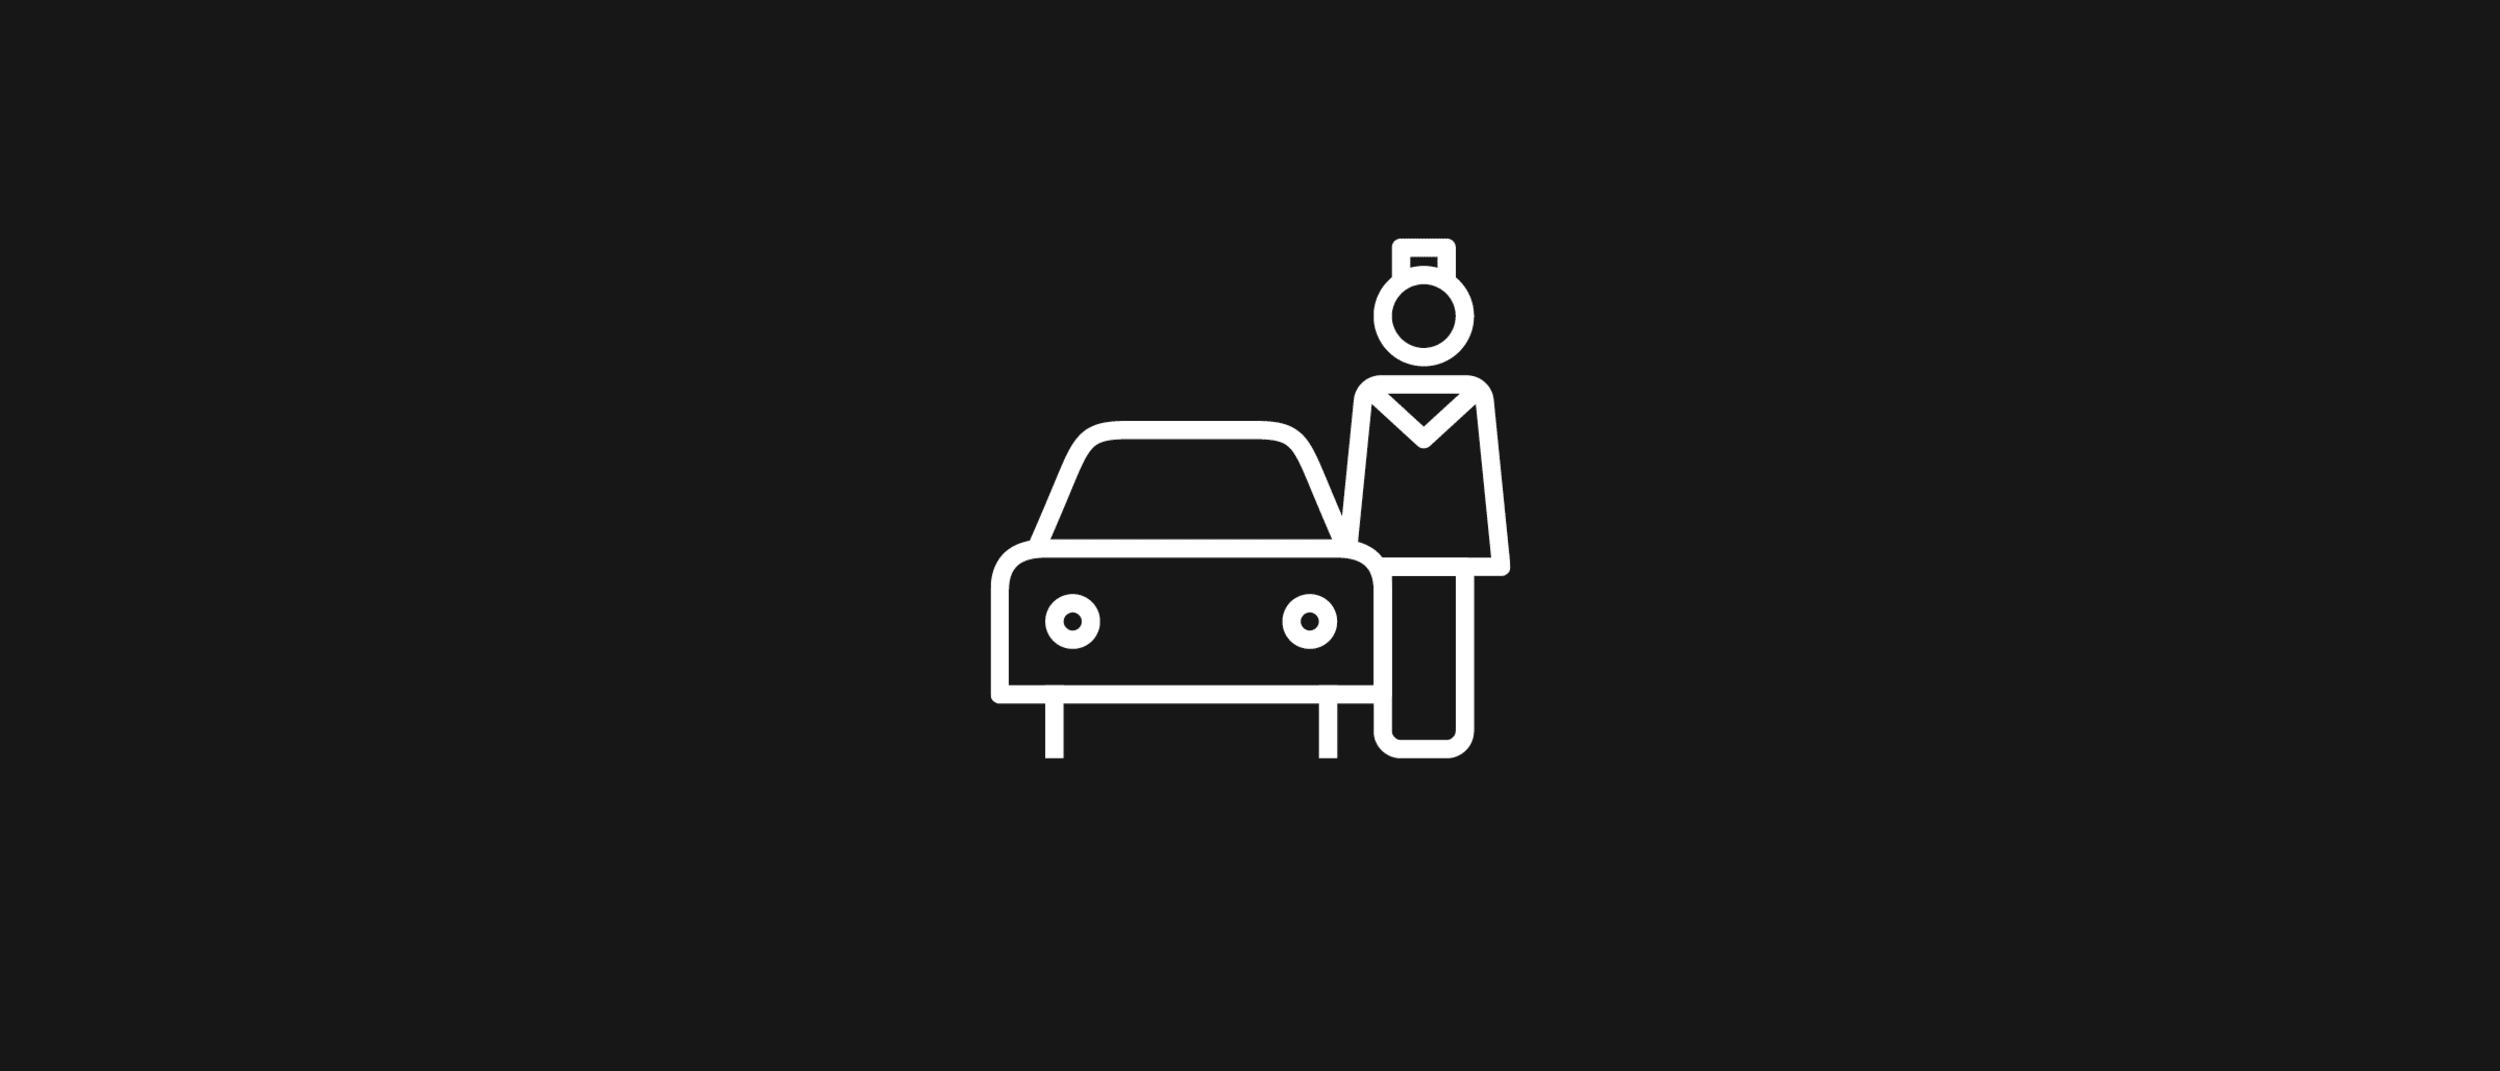 Save time and park in Valet